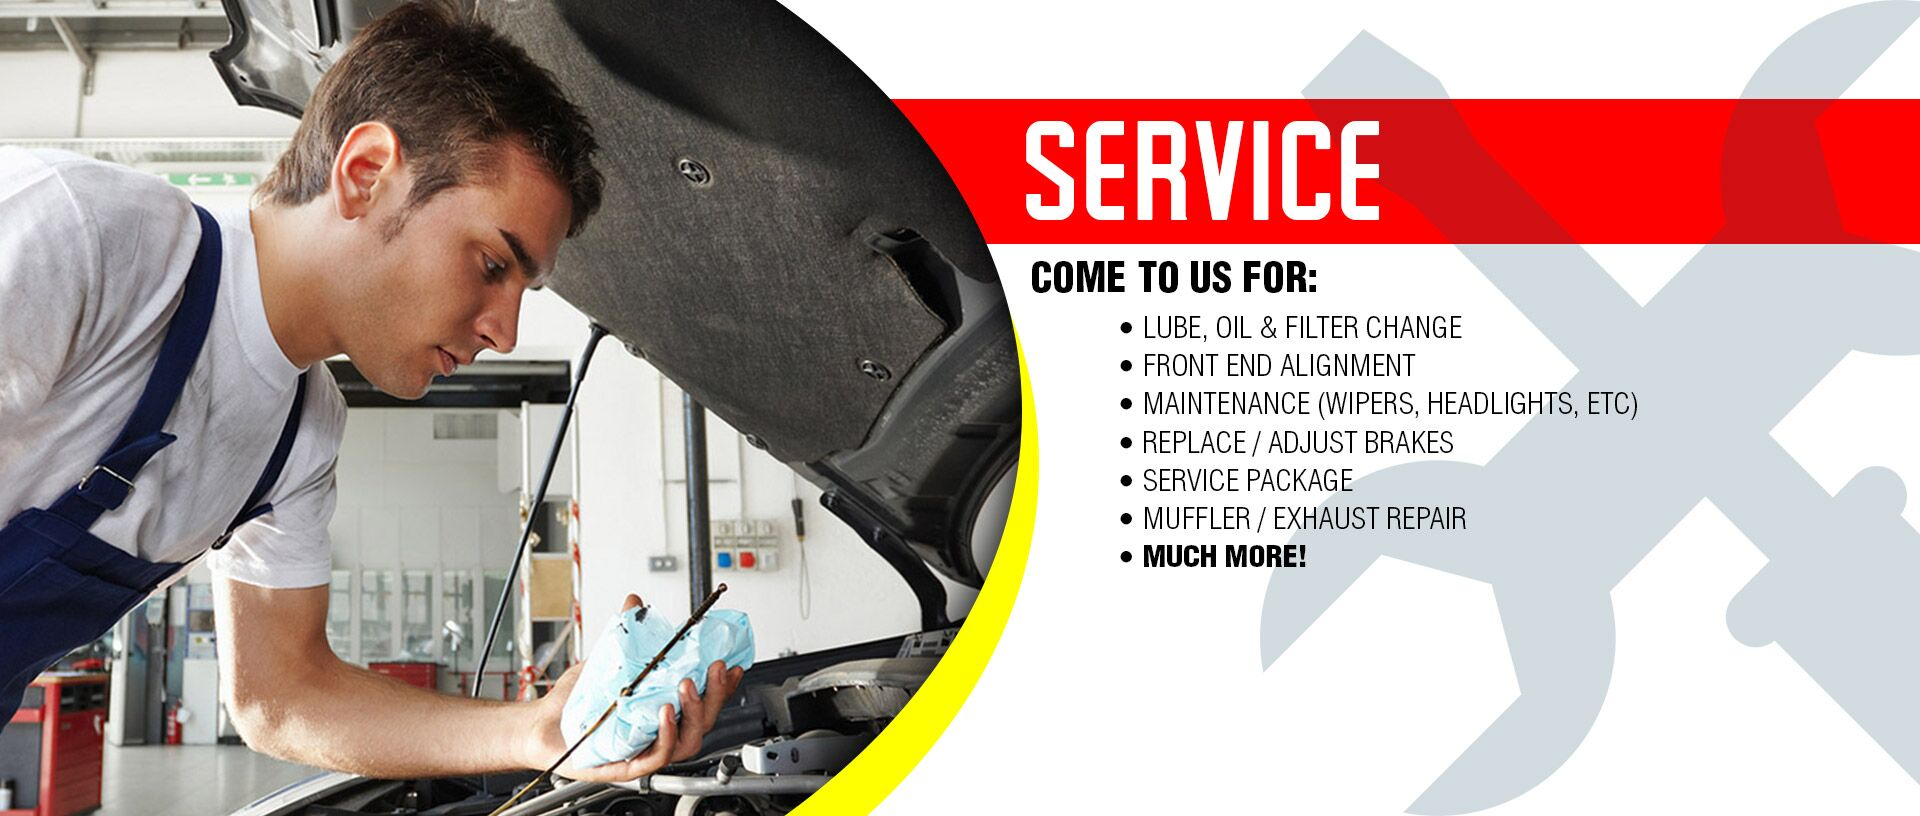 Siry Auto Service Department